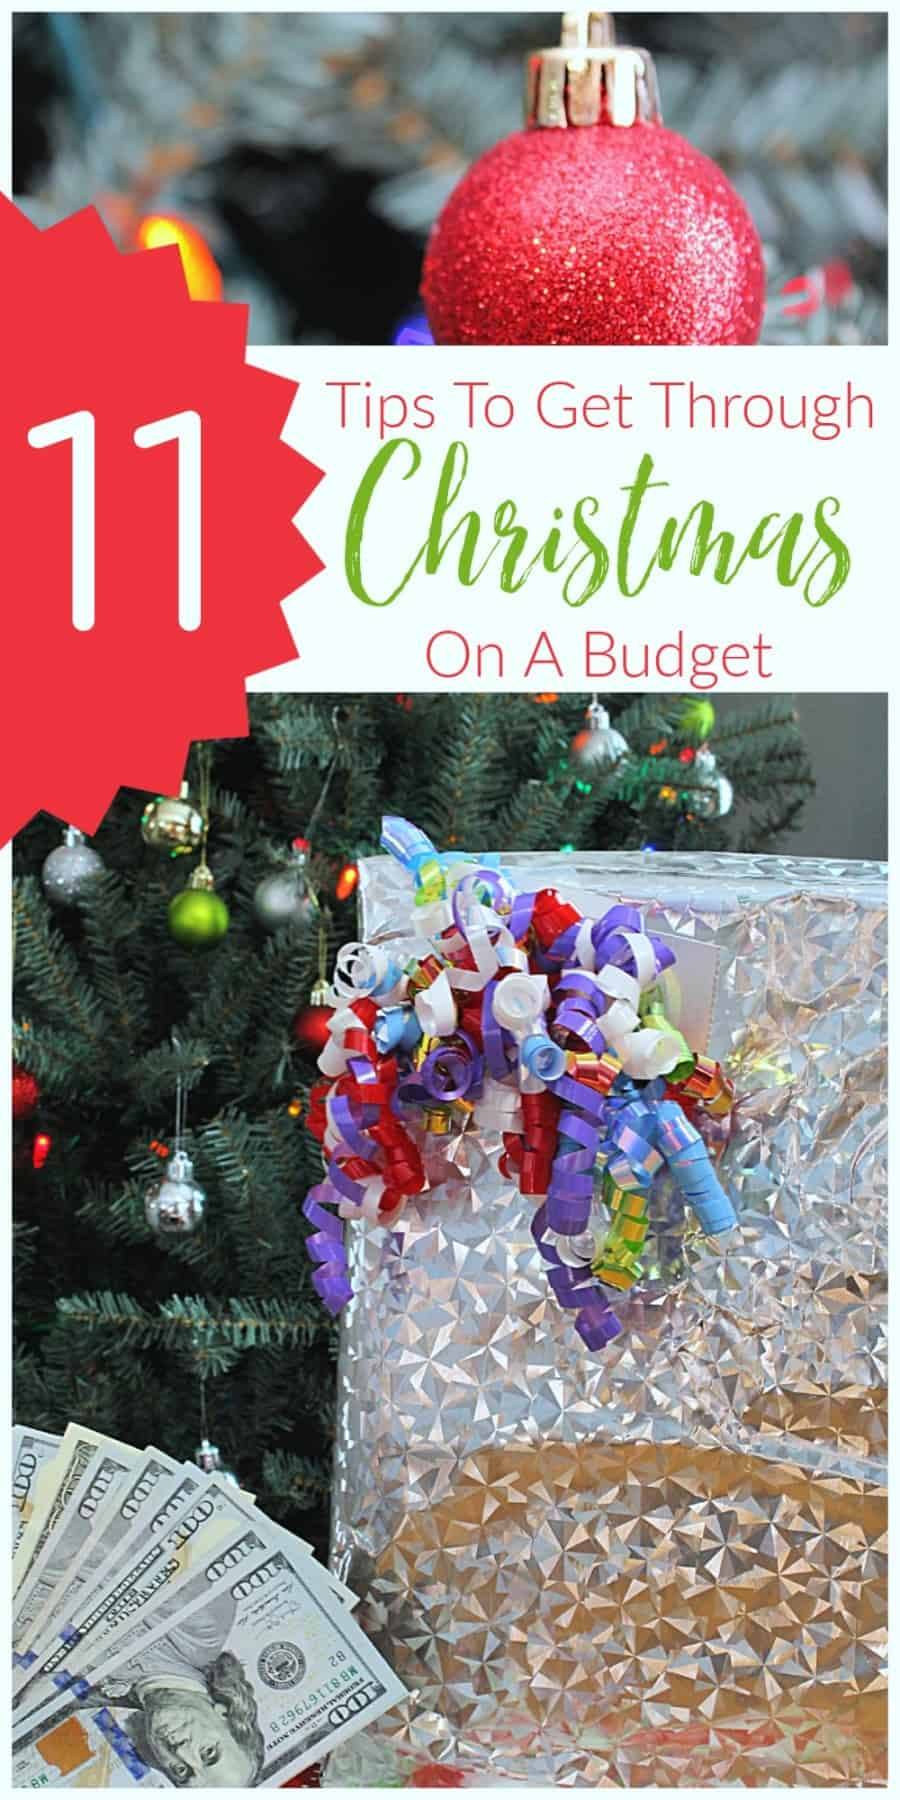 Tips To Get Through Christmas On A Budget & In Style